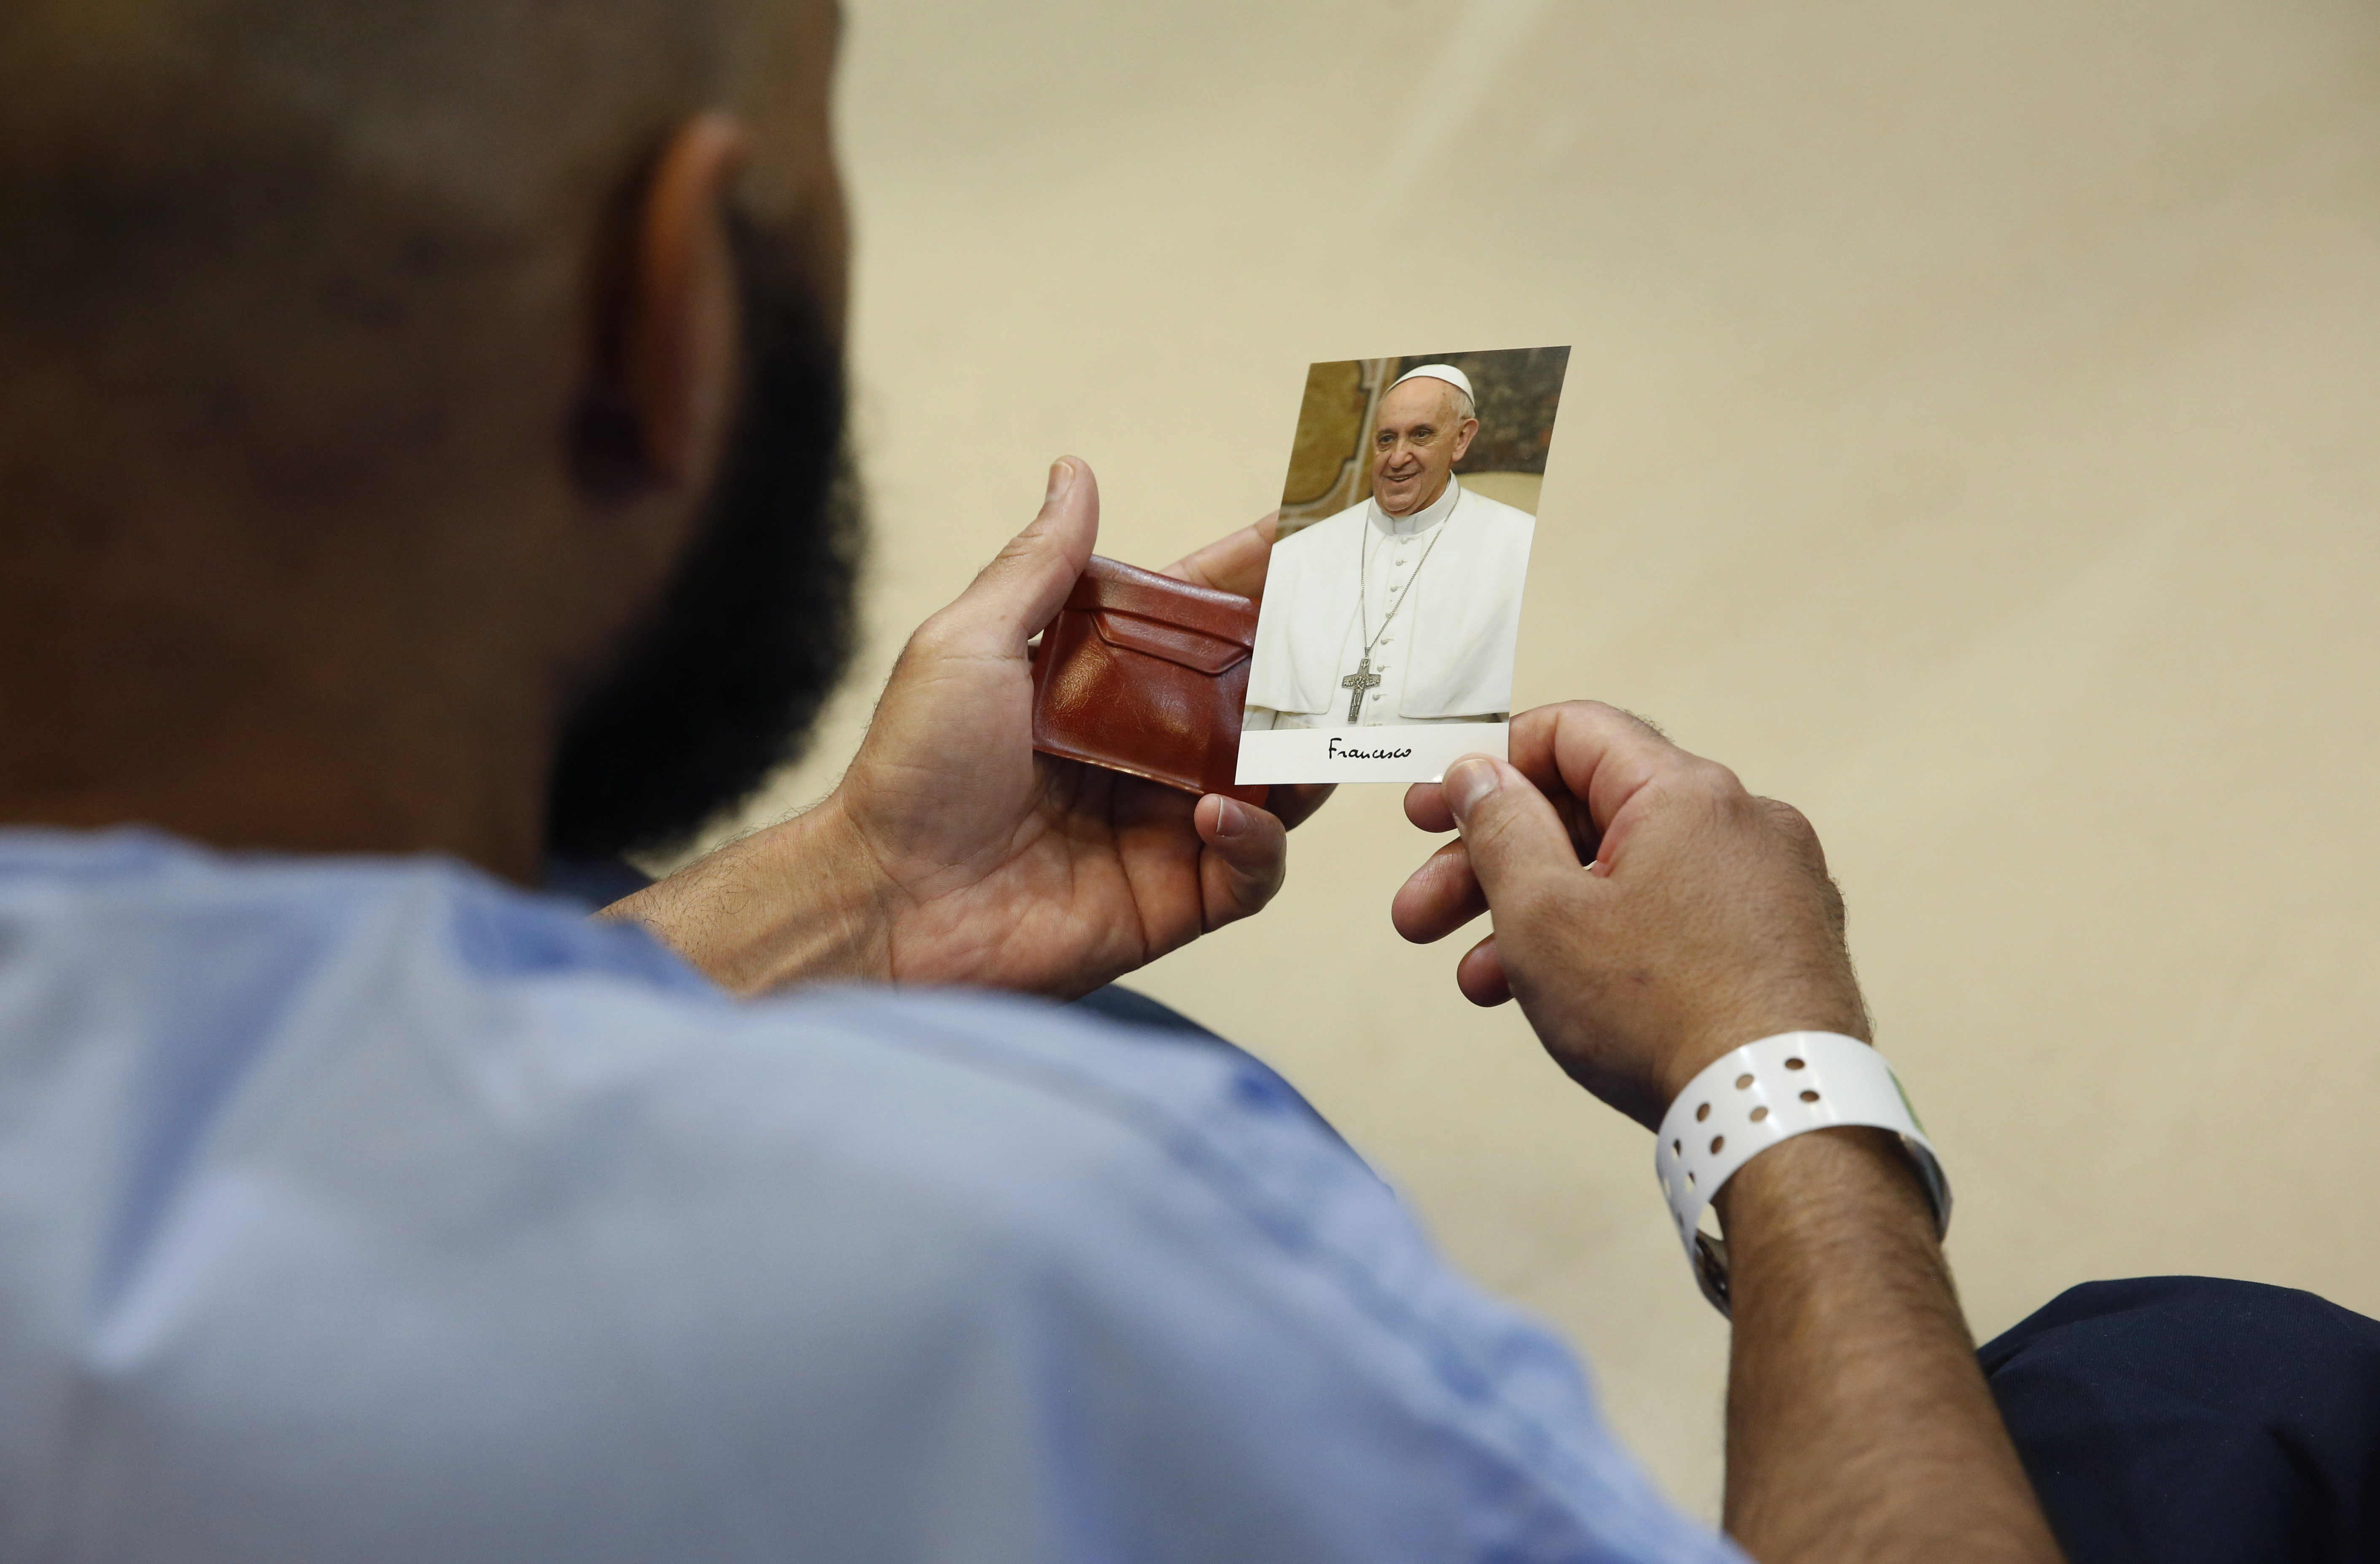 An inmate hold a photo of Pope Francis as he meets with prisoners at Curran-Fromhold Correctional Facility in Philadelphia, September 27, 2015.       REUTERS/Jonathan Ernst - RTX1SPRY